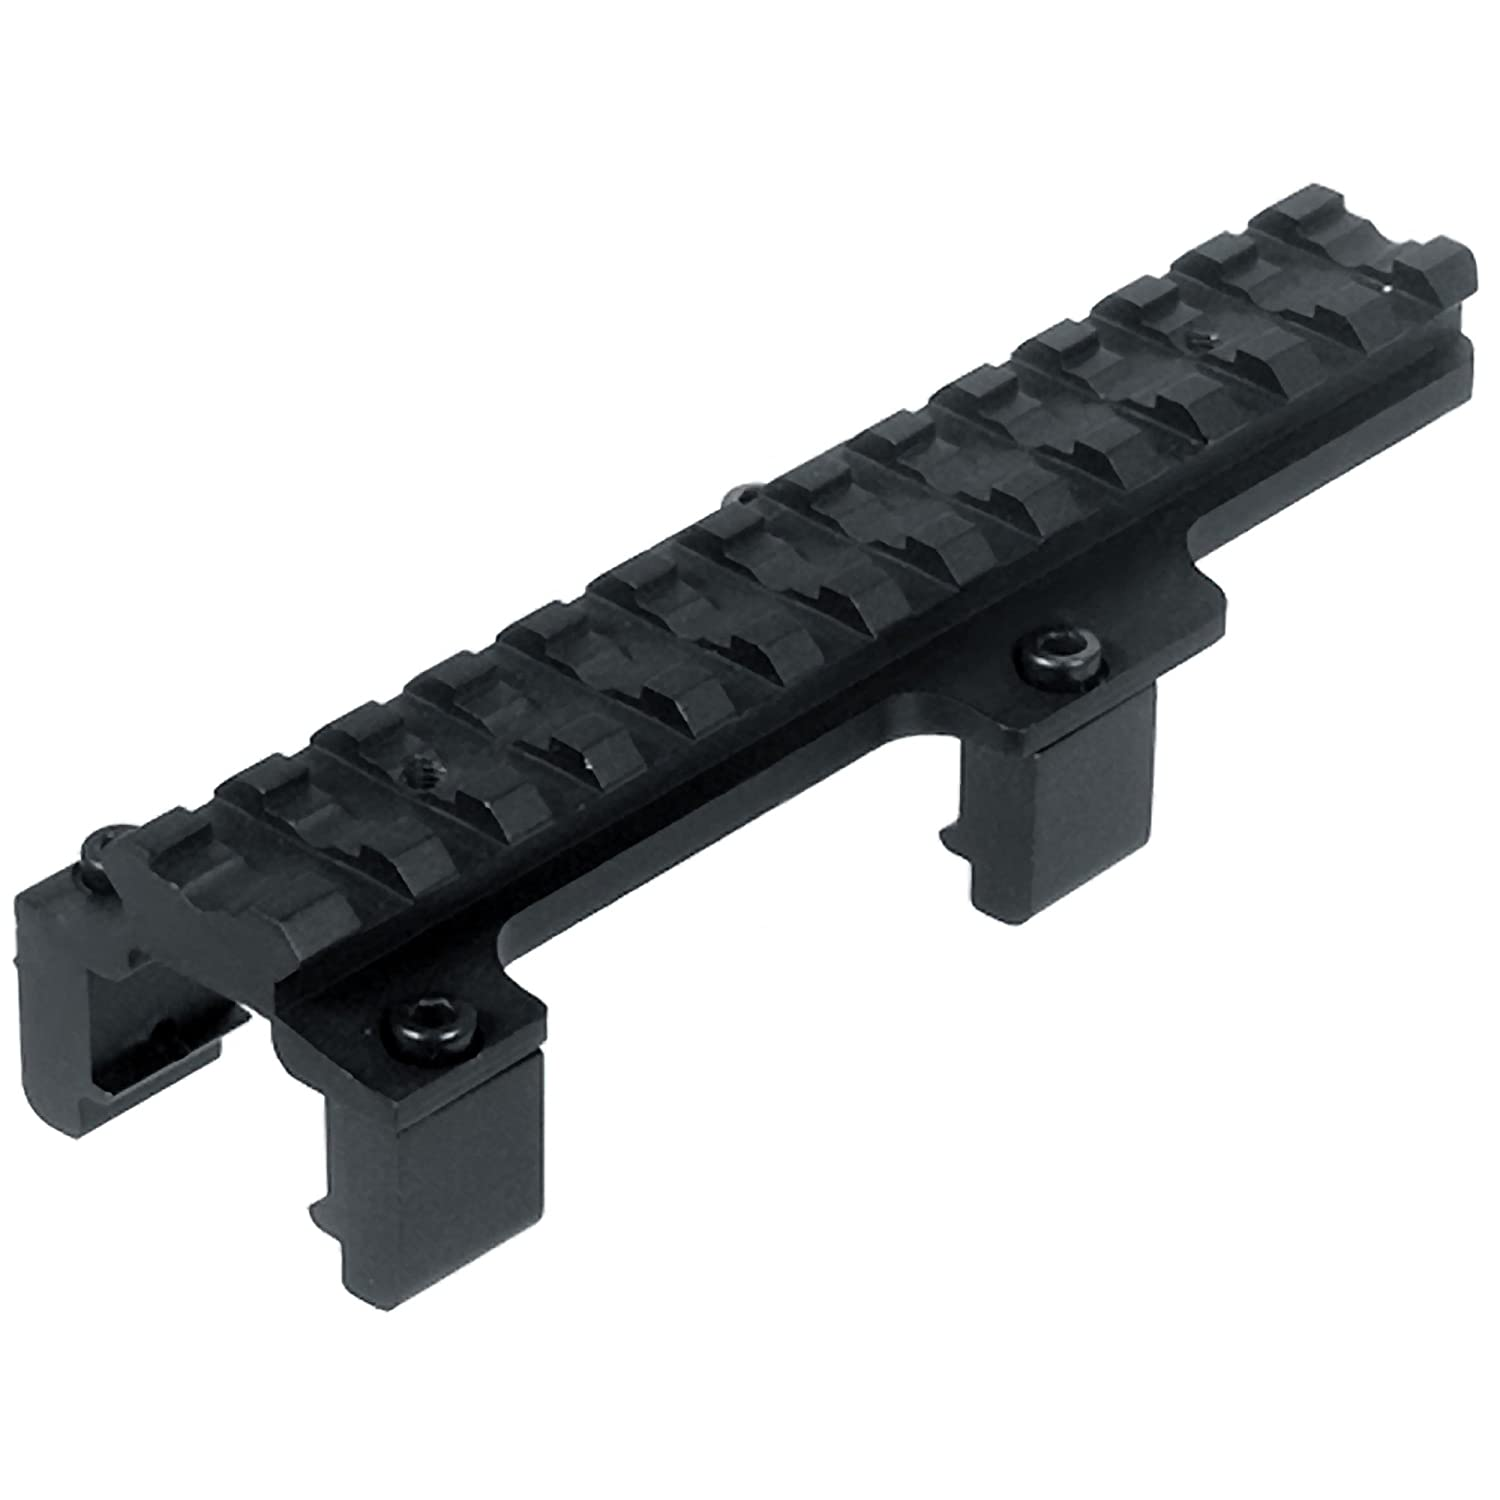 UTG MP5 Bi-directional Picatinny Mount, Low Profile